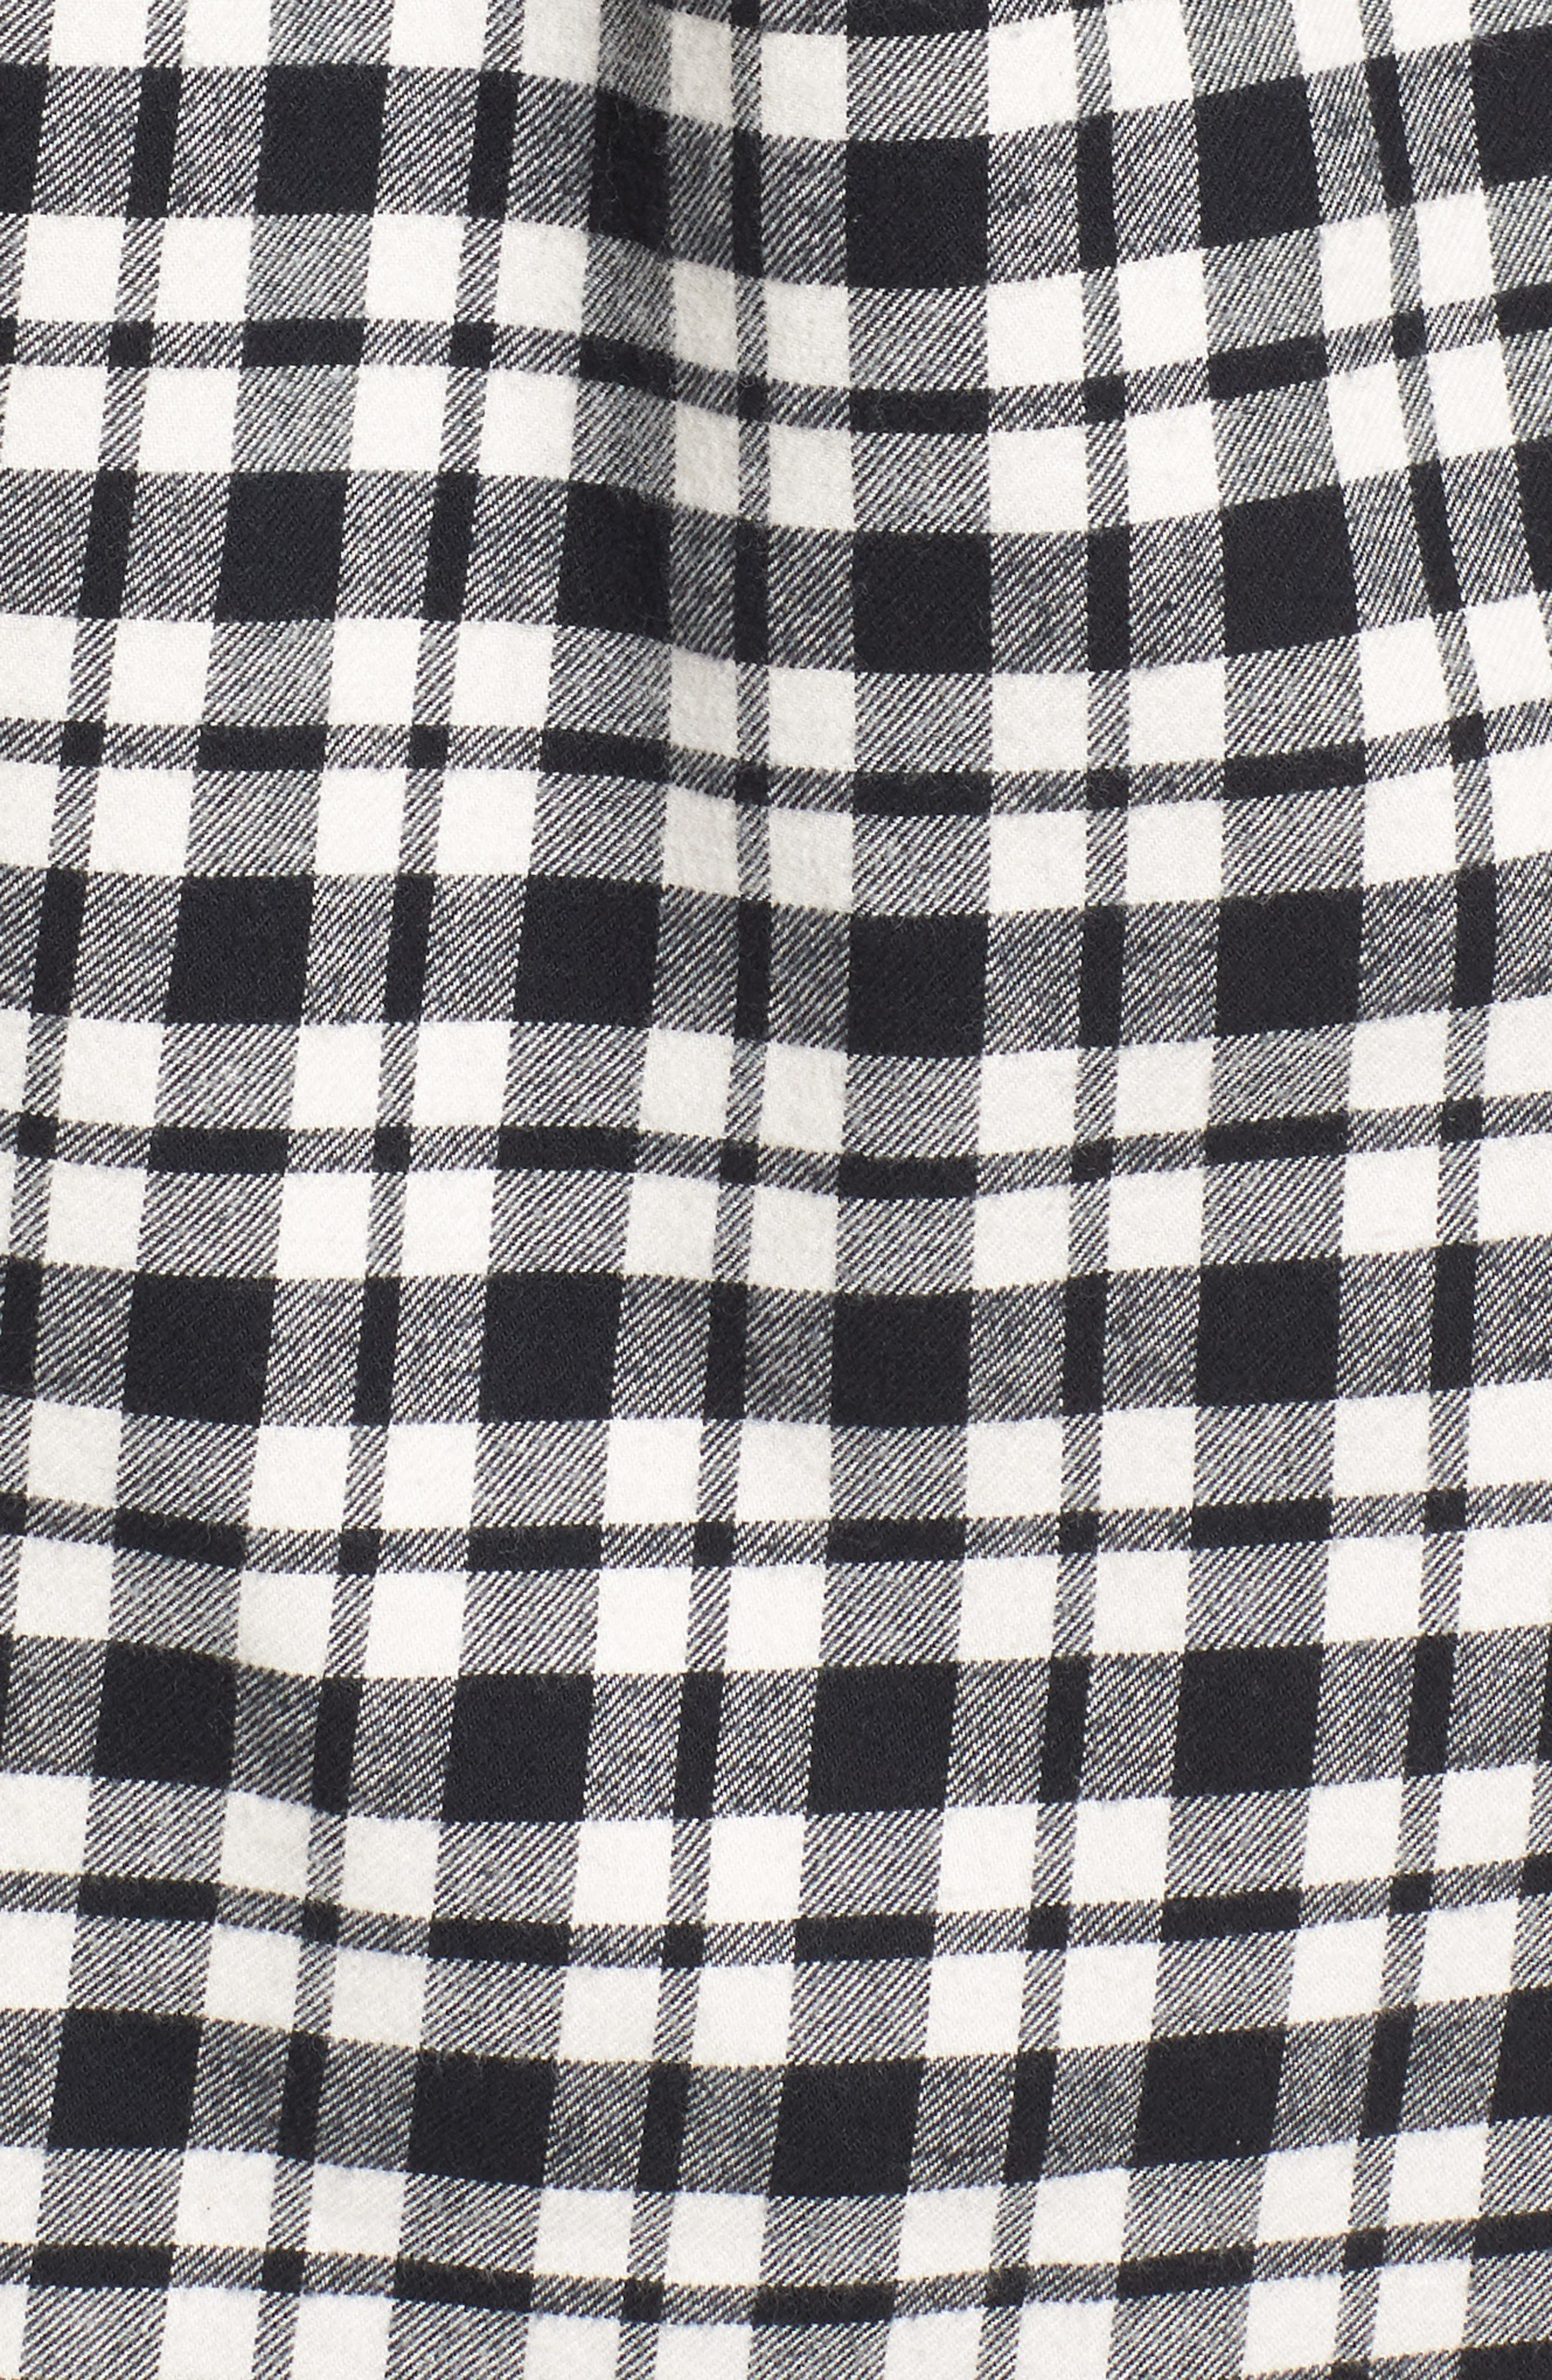 MADEWELL, Oversize Flannel Shirt, Alternate thumbnail 5, color, 002